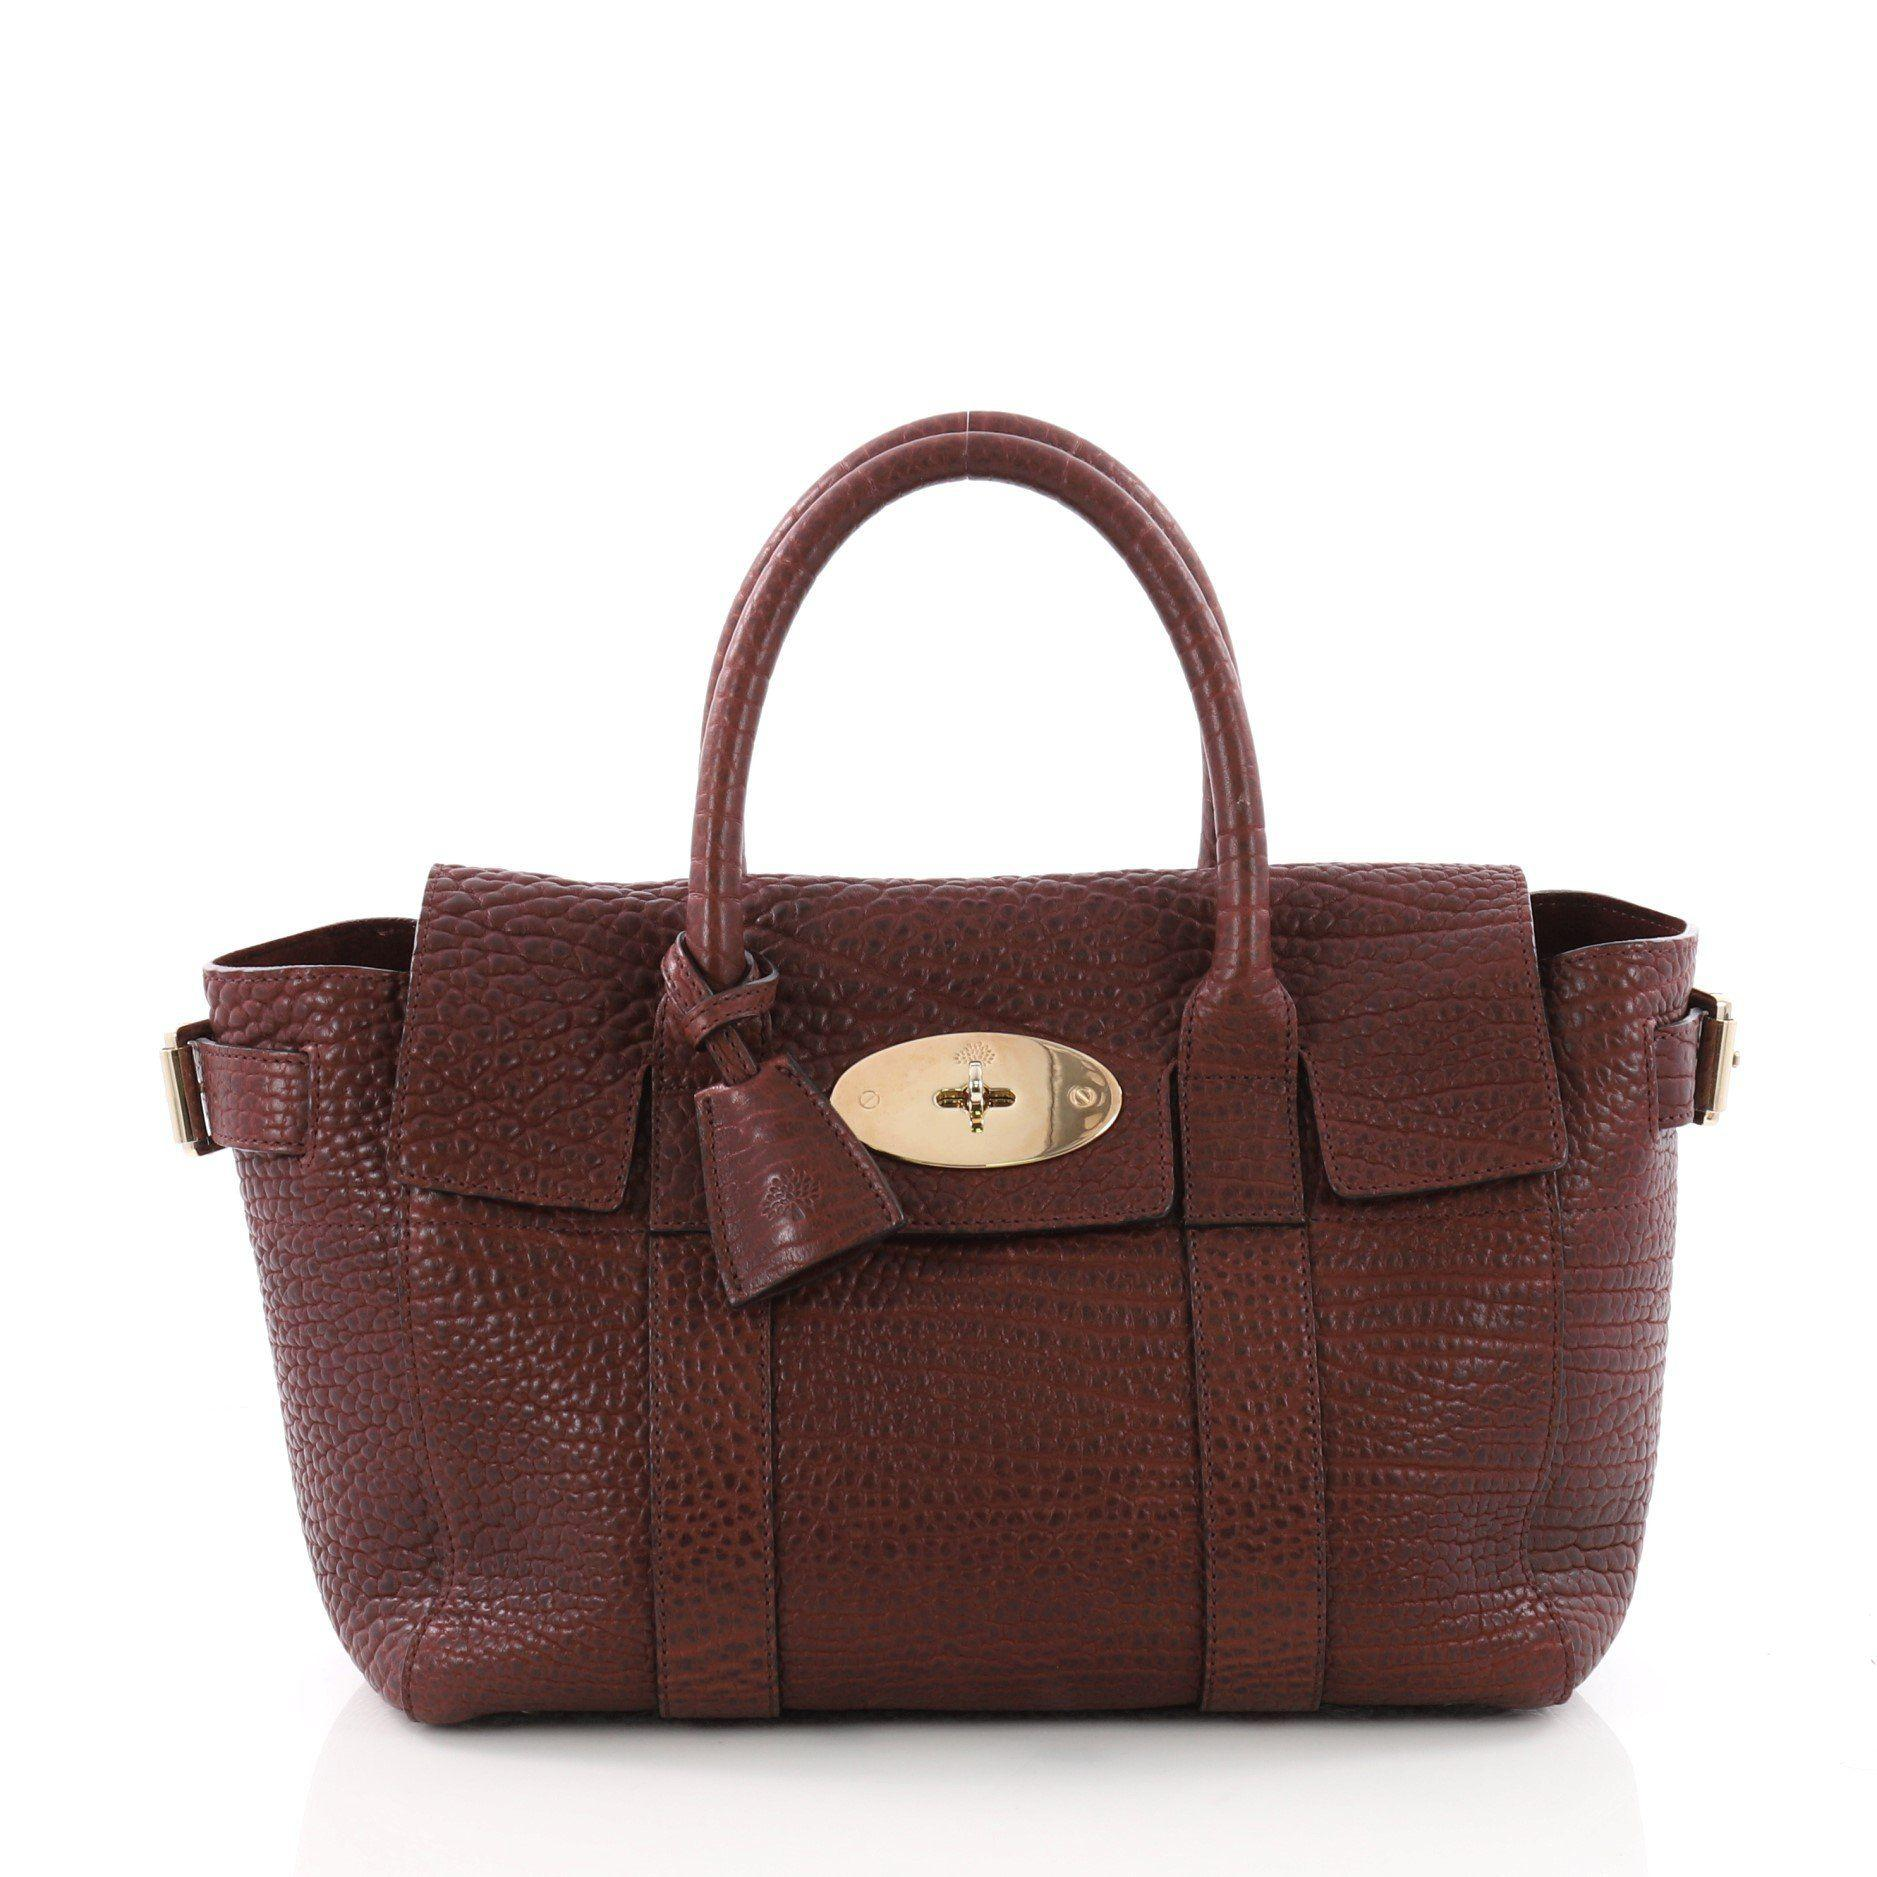 b1b37ba3f9f Lyst - Mulberry Pre Owned Bayswater Satchel Leather Small in Brown